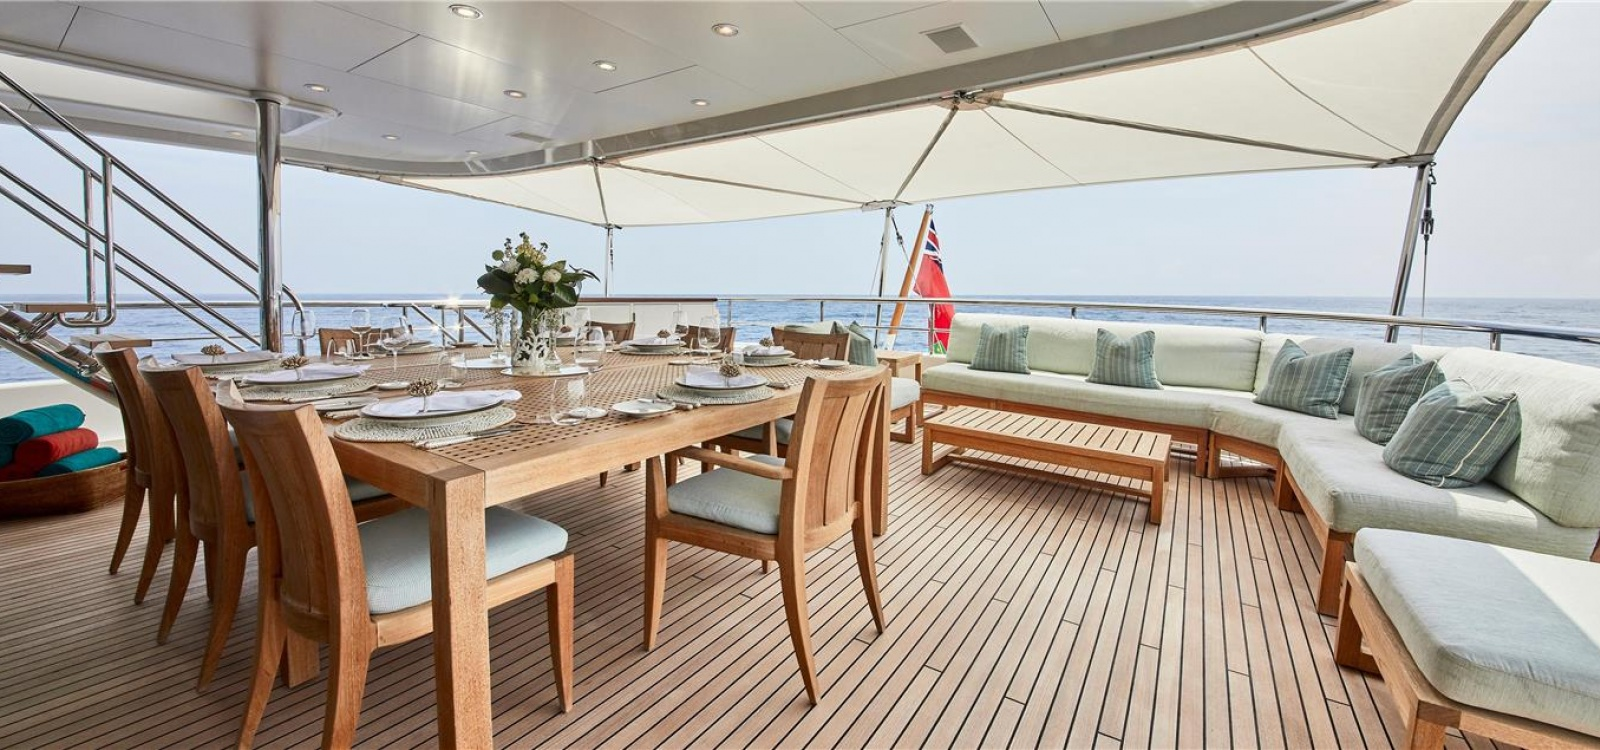 5 Rooms, Motor Yacht, For Sale, 11 Bathrooms, Listing ID 1079